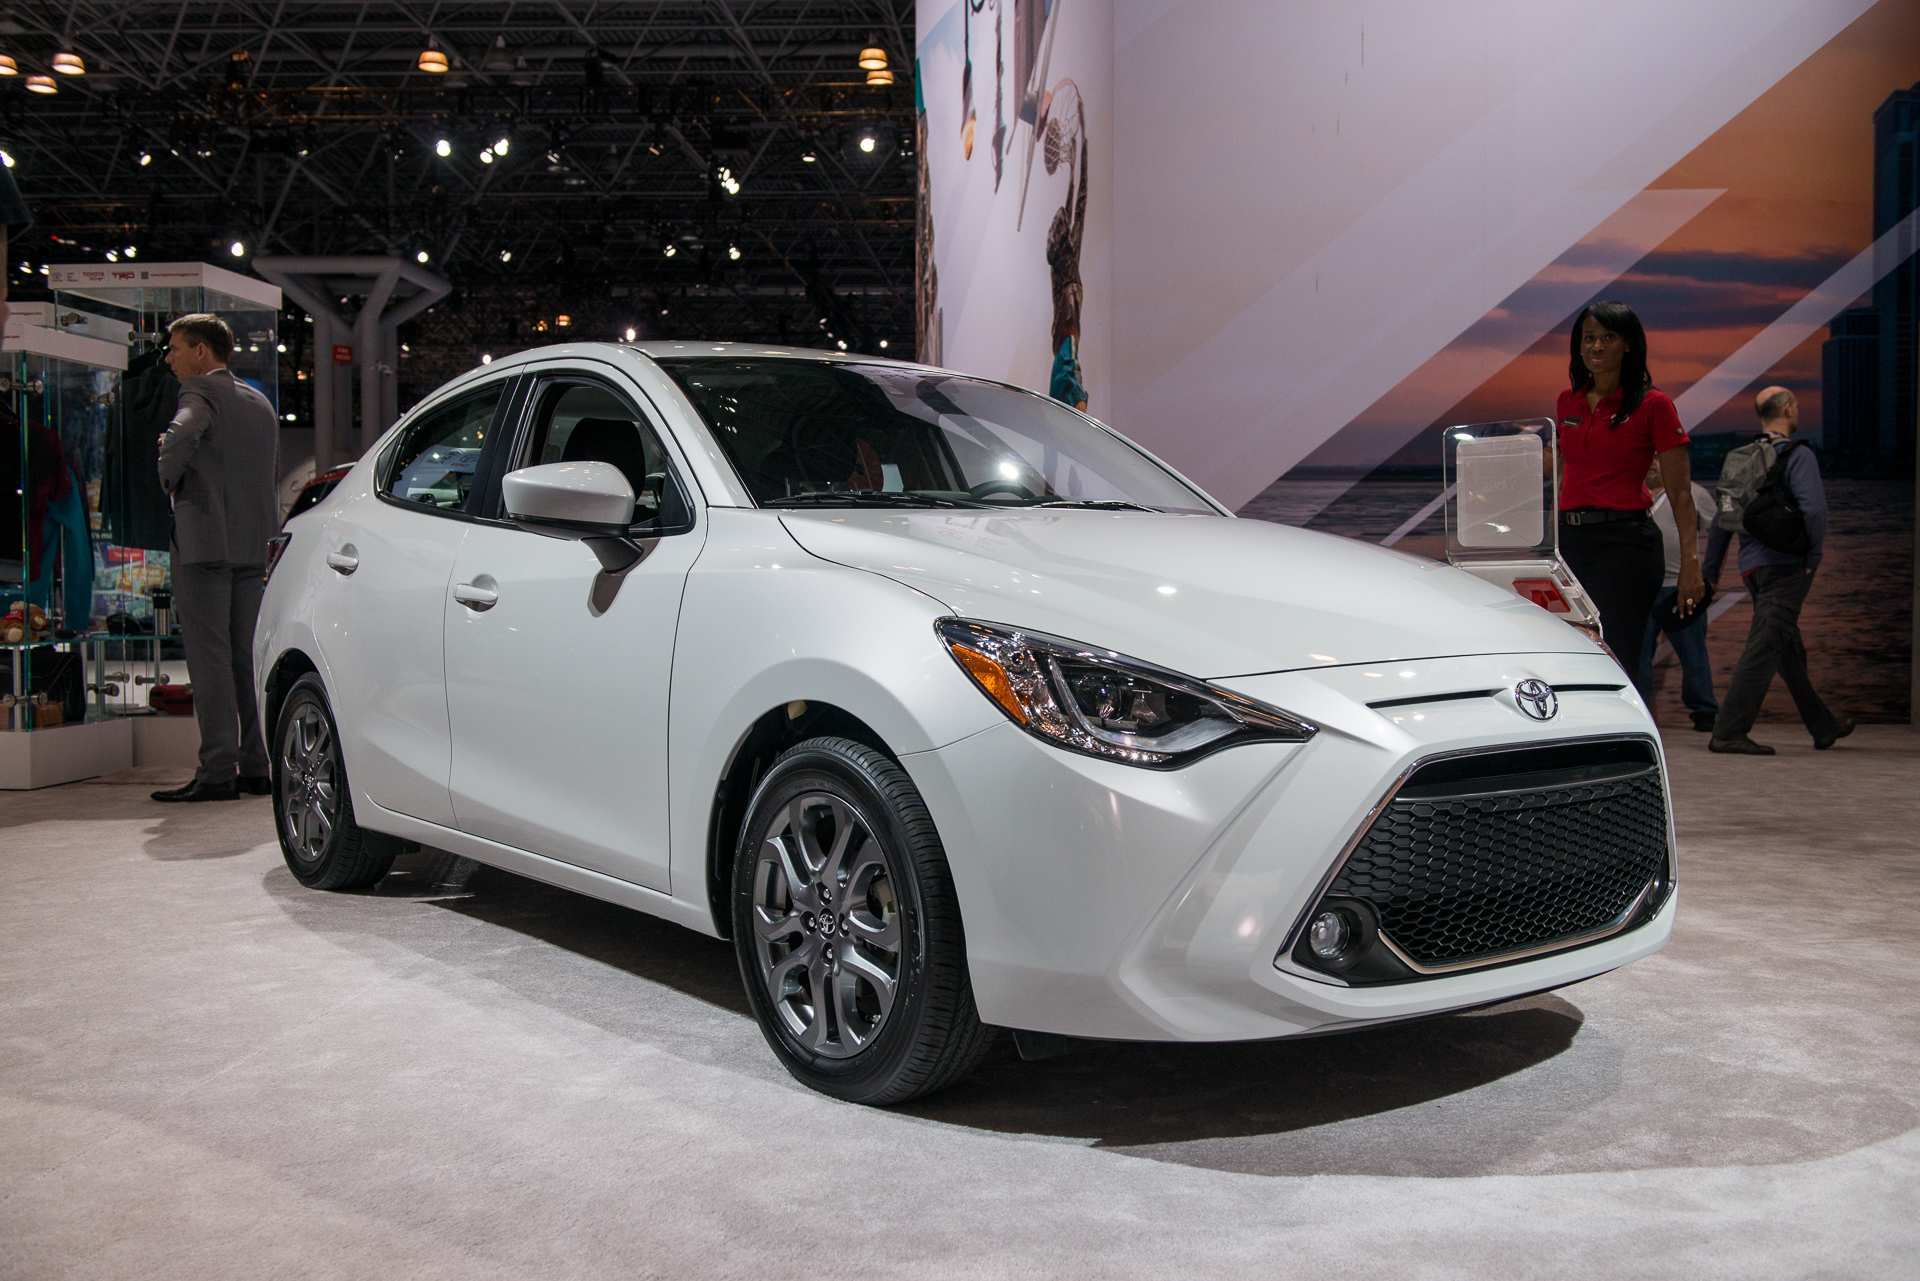 22 Concept of 2019 Toyota Ia Release Date for 2019 Toyota Ia